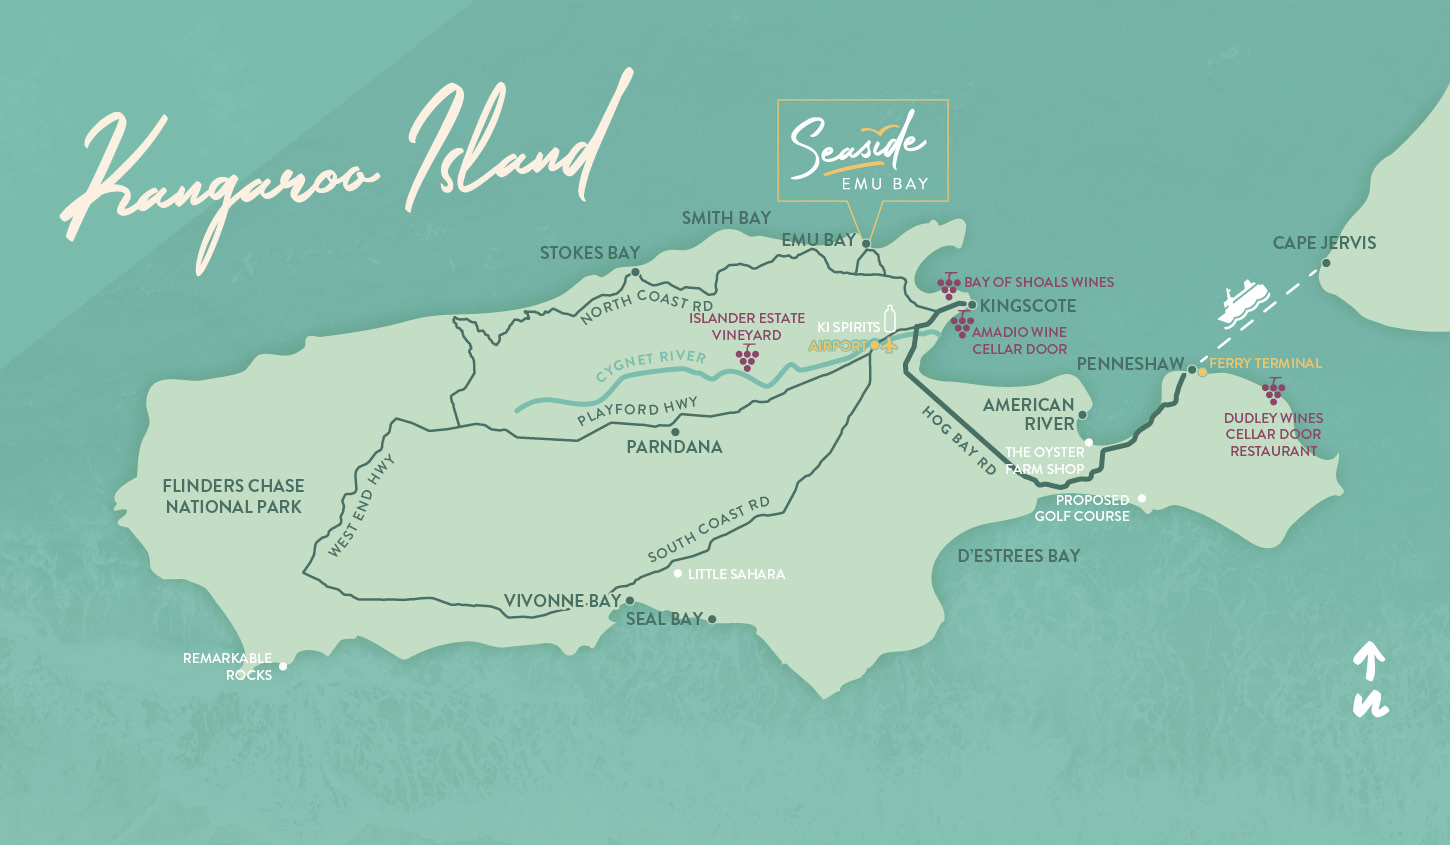 Seaside location map of Kangaroo Island designed by Algo Mas